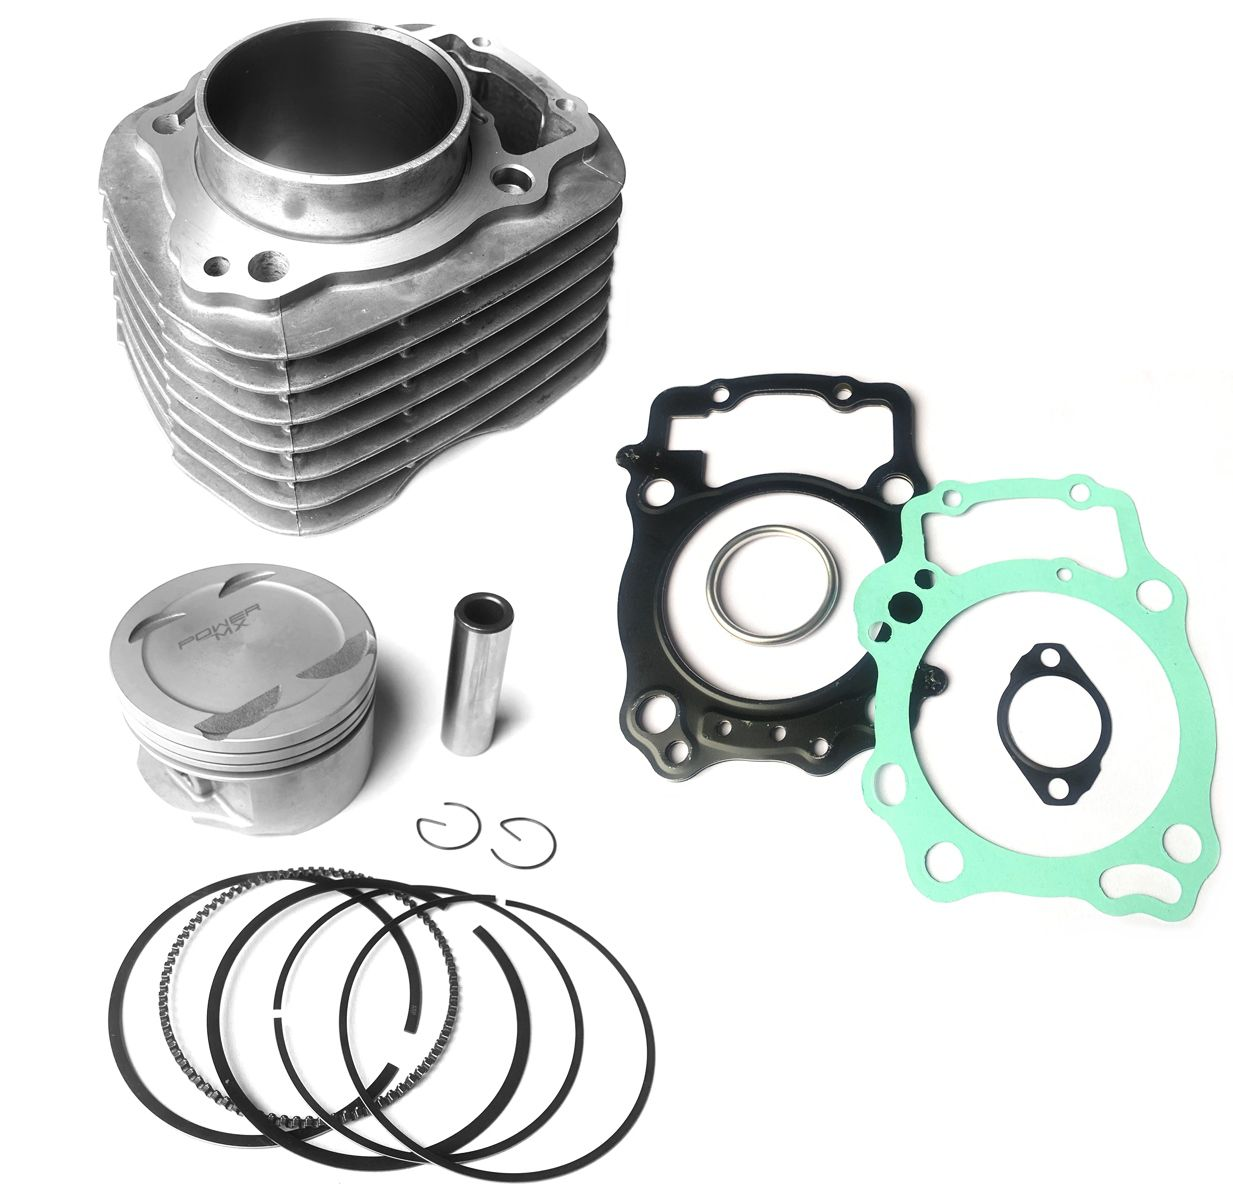 Kit Aumento Cilindrada Power Mx Crf 250f P/ 286cc